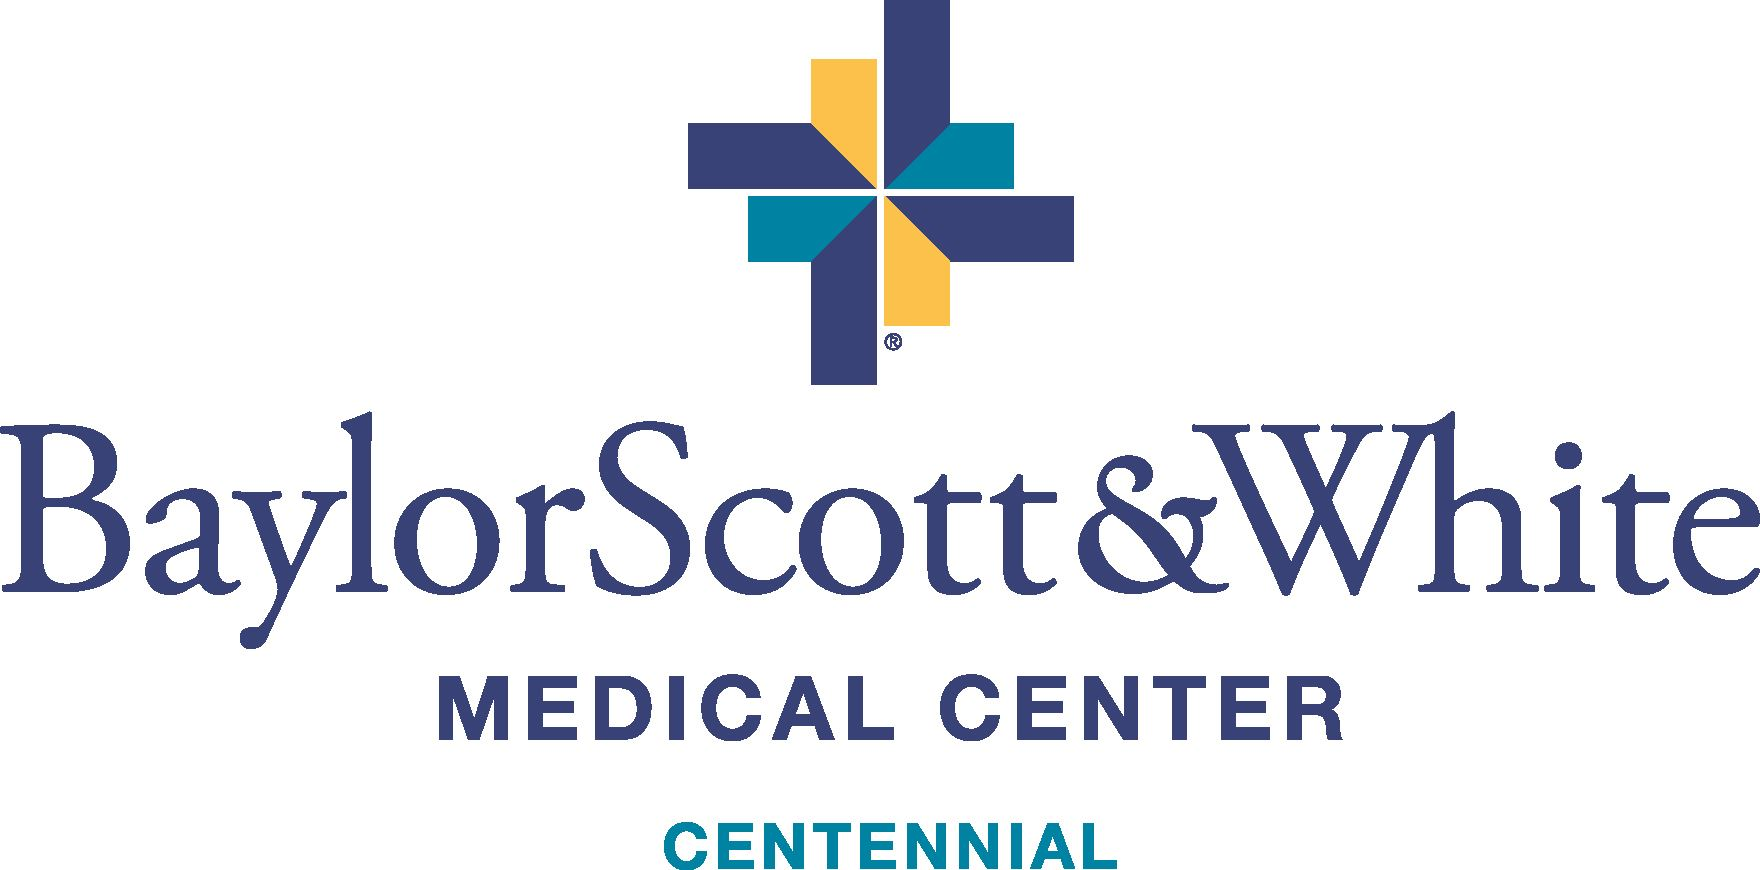 BSW Medical Center Centennial